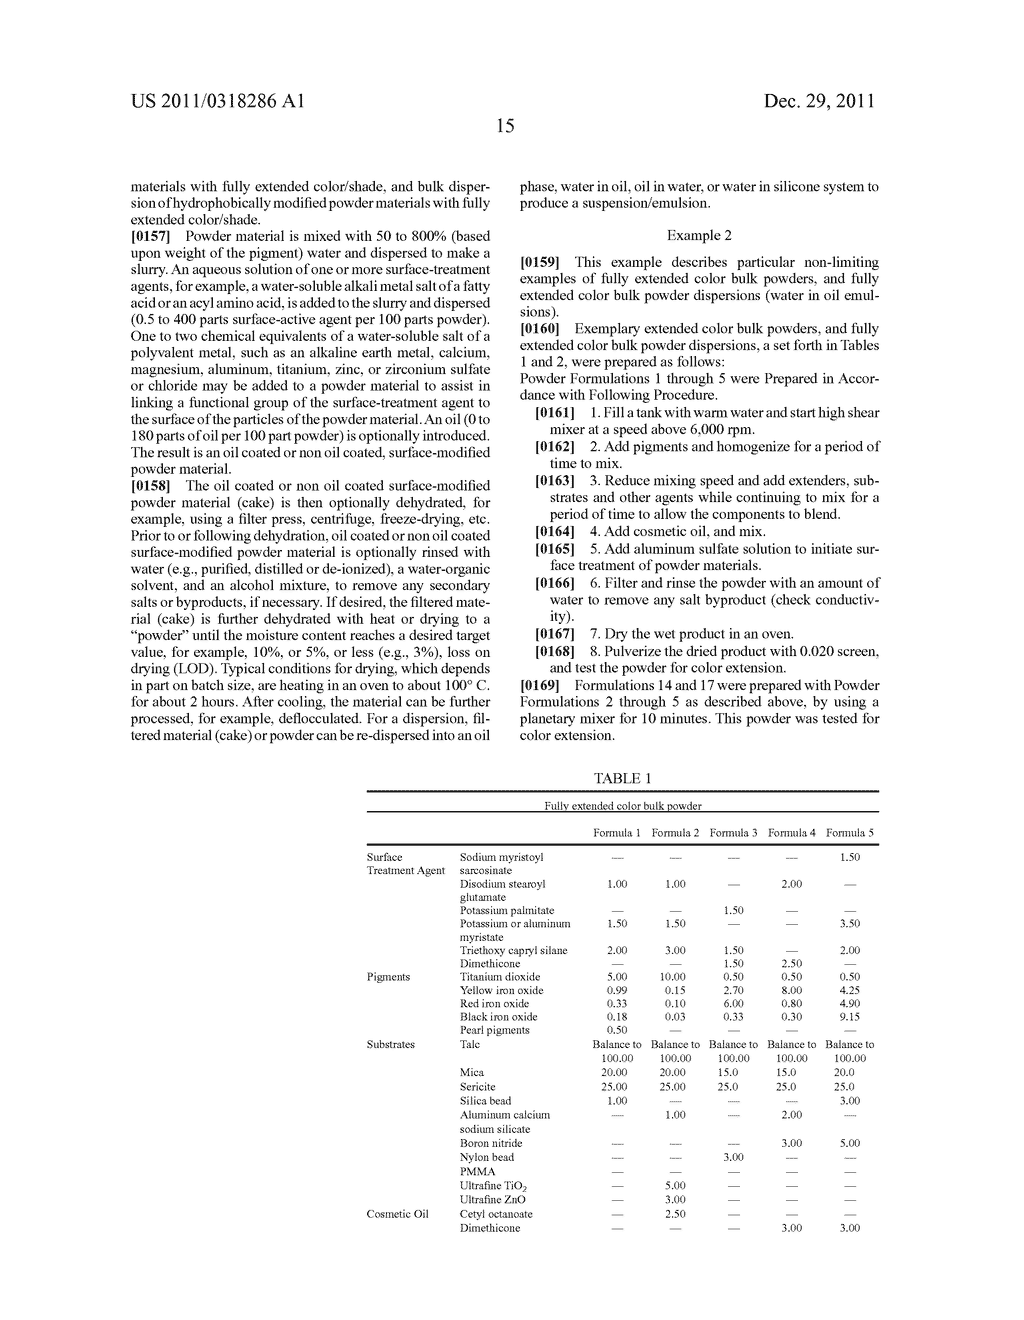 SPF ENHANCED EXTENDED COLOR BULK POWDERS AND METHODS OF MAKING THEREOF - diagram, schematic, and image 27